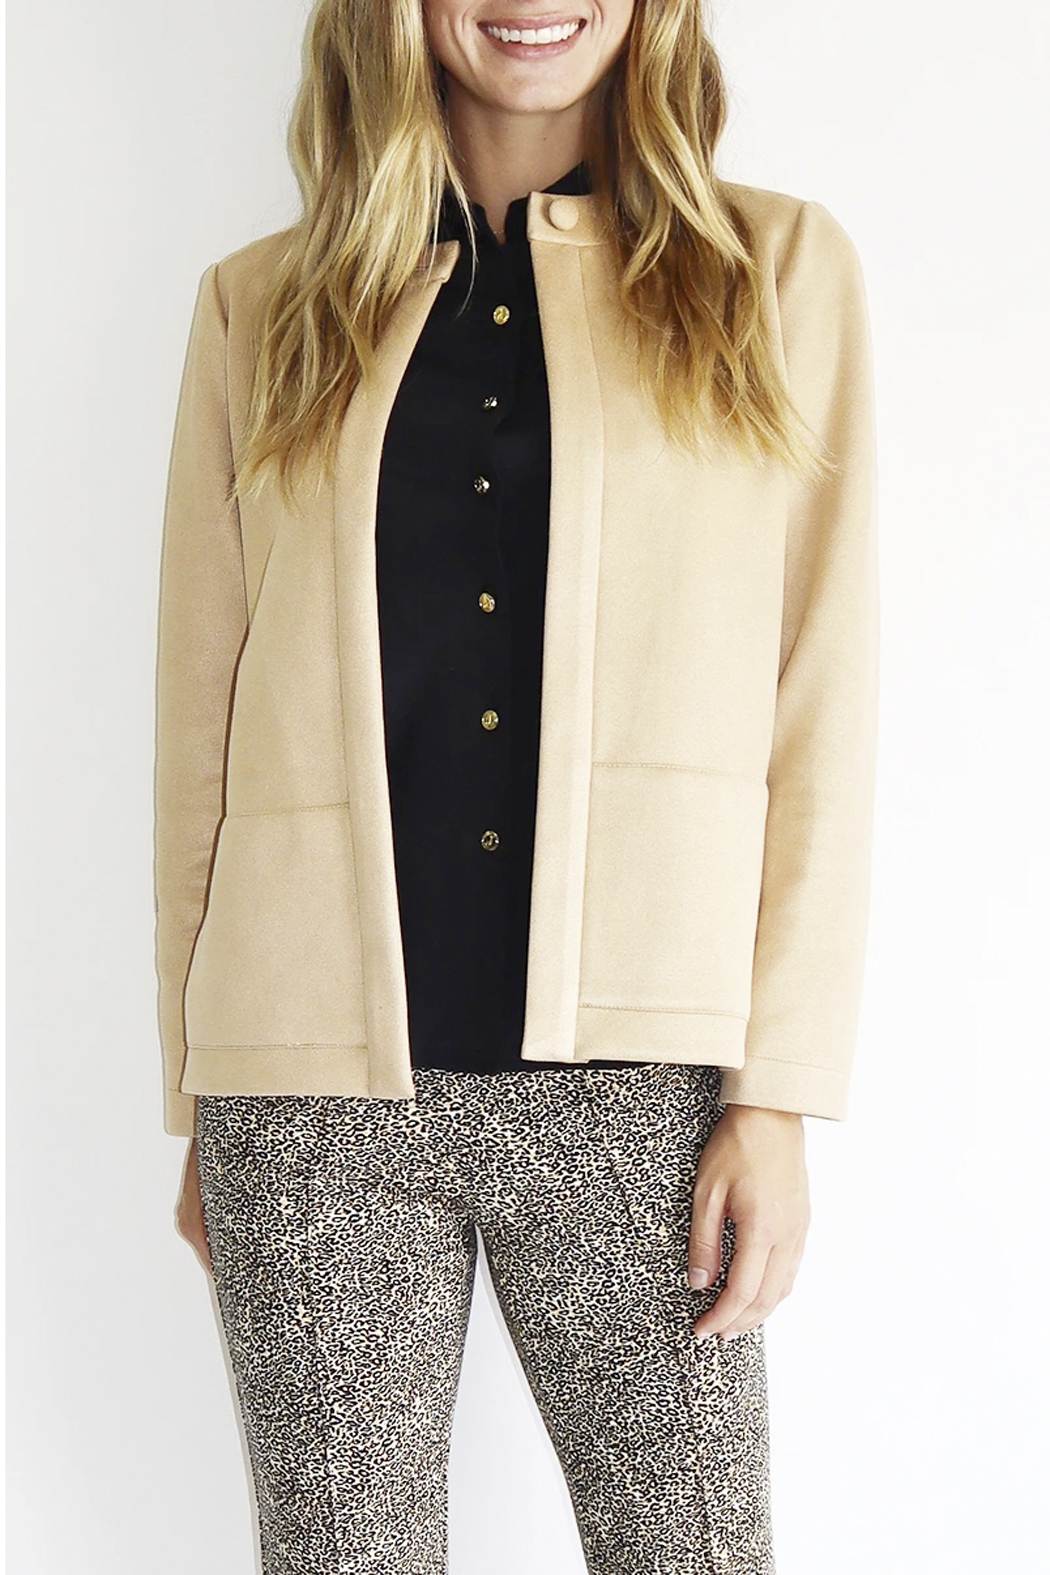 Jude Connally Clover Faux-Suede Jacket - Main Image